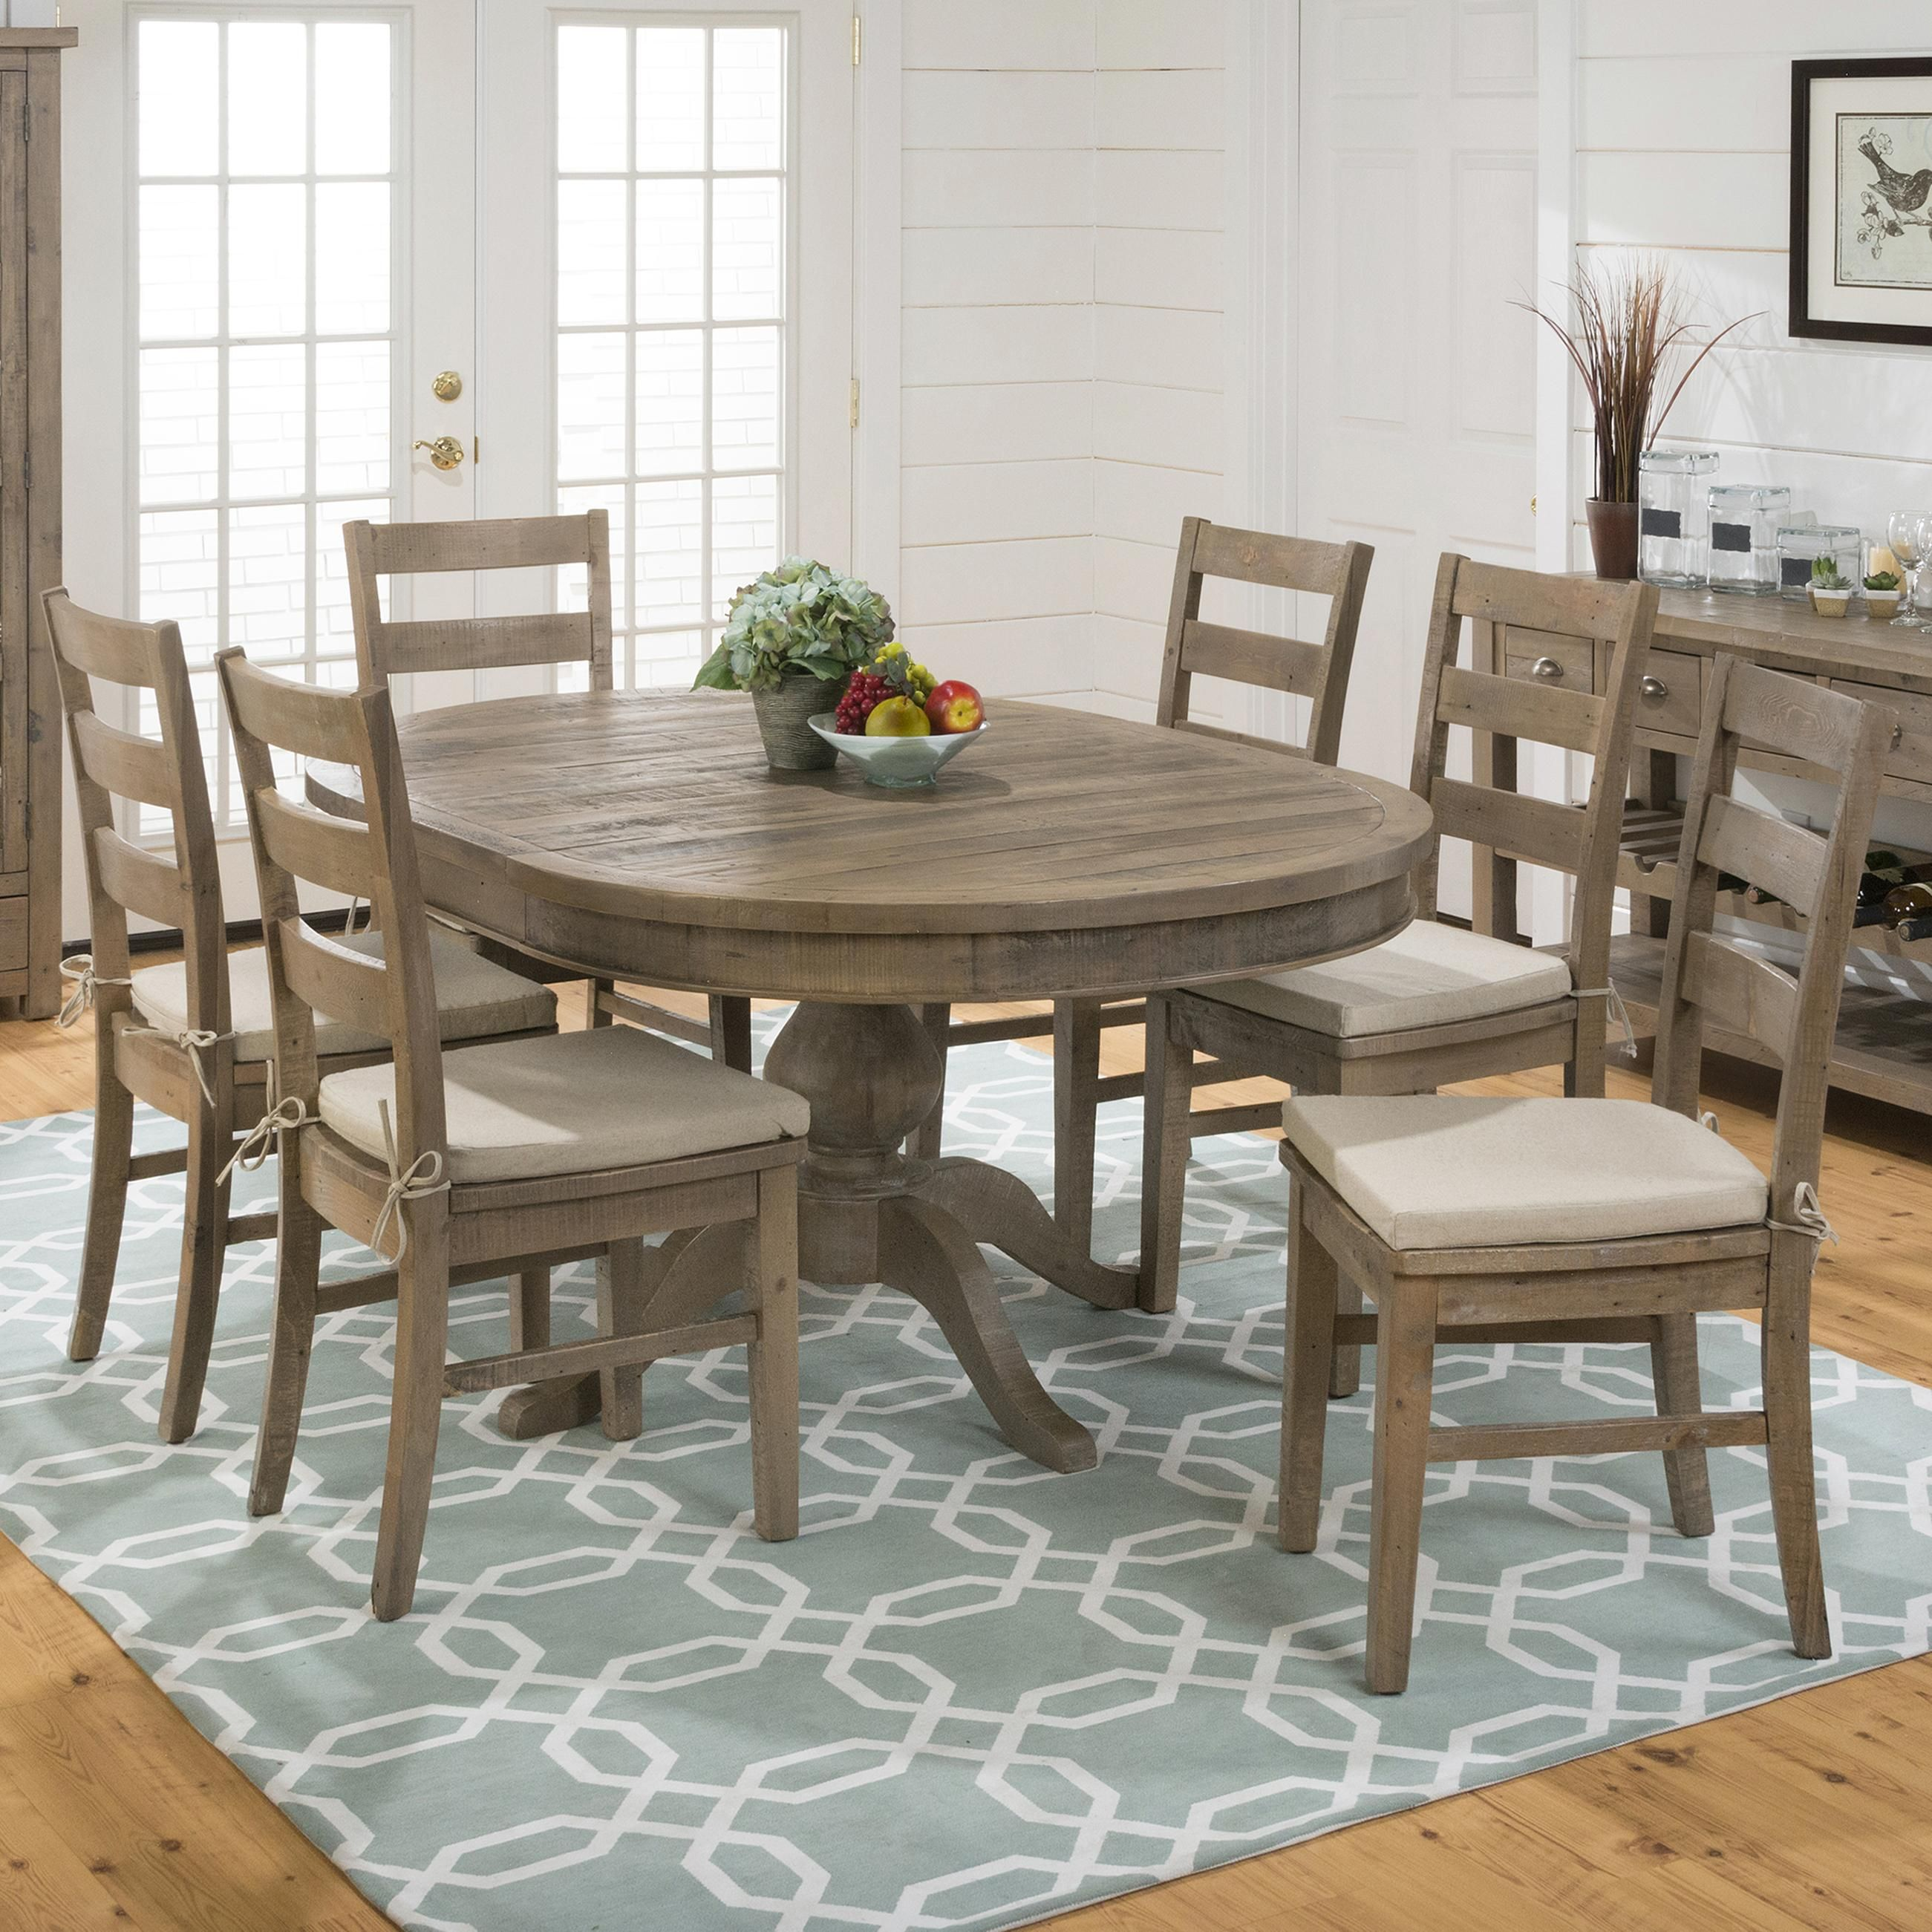 Oval Kitchen Table Chairs Inspiring Collection Including: Slater Mill Pine Oval Table And Ladderback Chair Set By